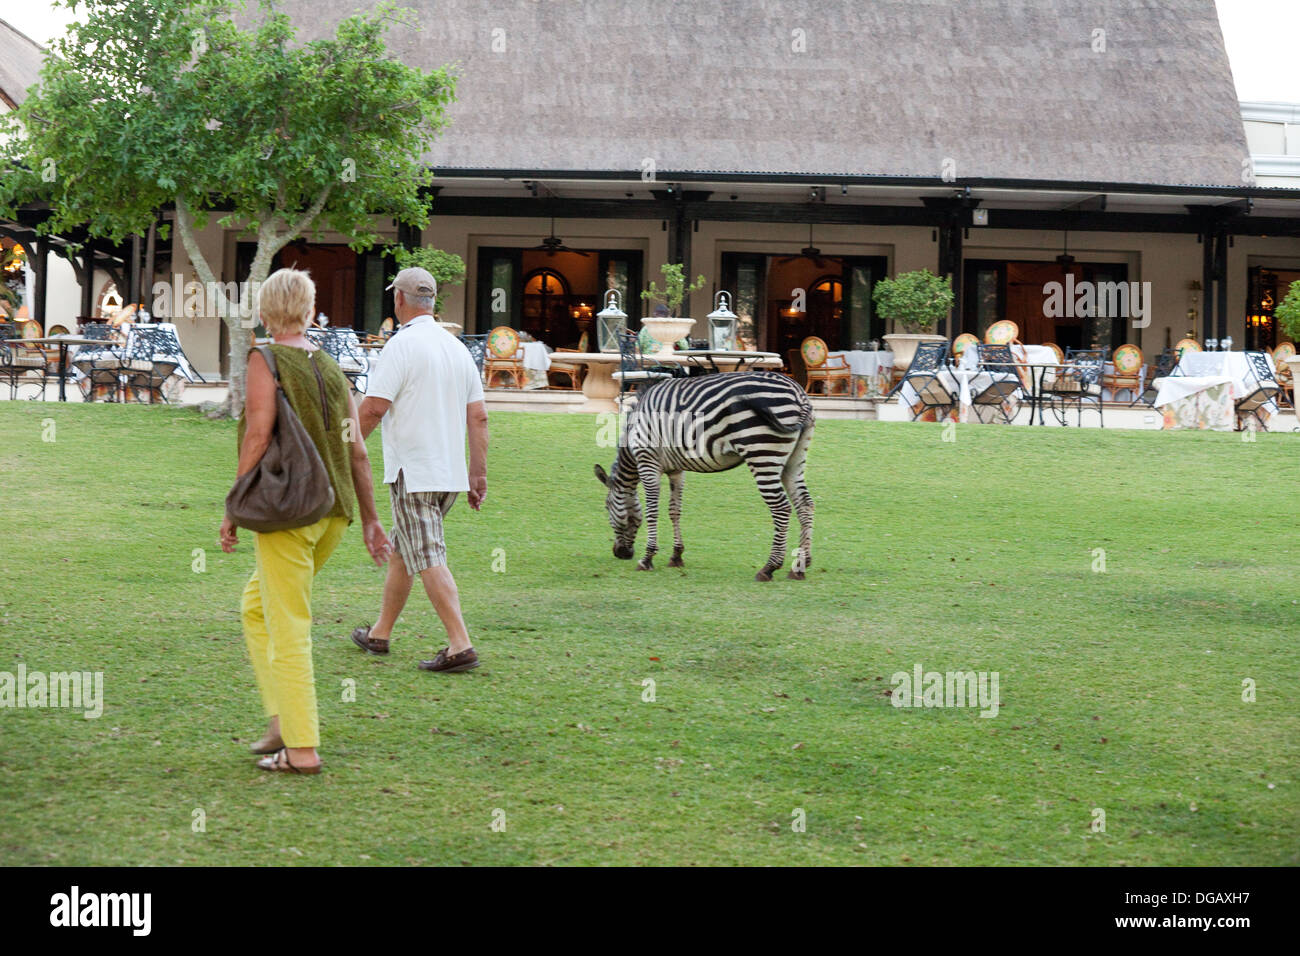 Guests walking past a zebra grazing in the grounds of the Royal Livingstone Hotel, Victoria Falls, Zambia Africa - Stock Image